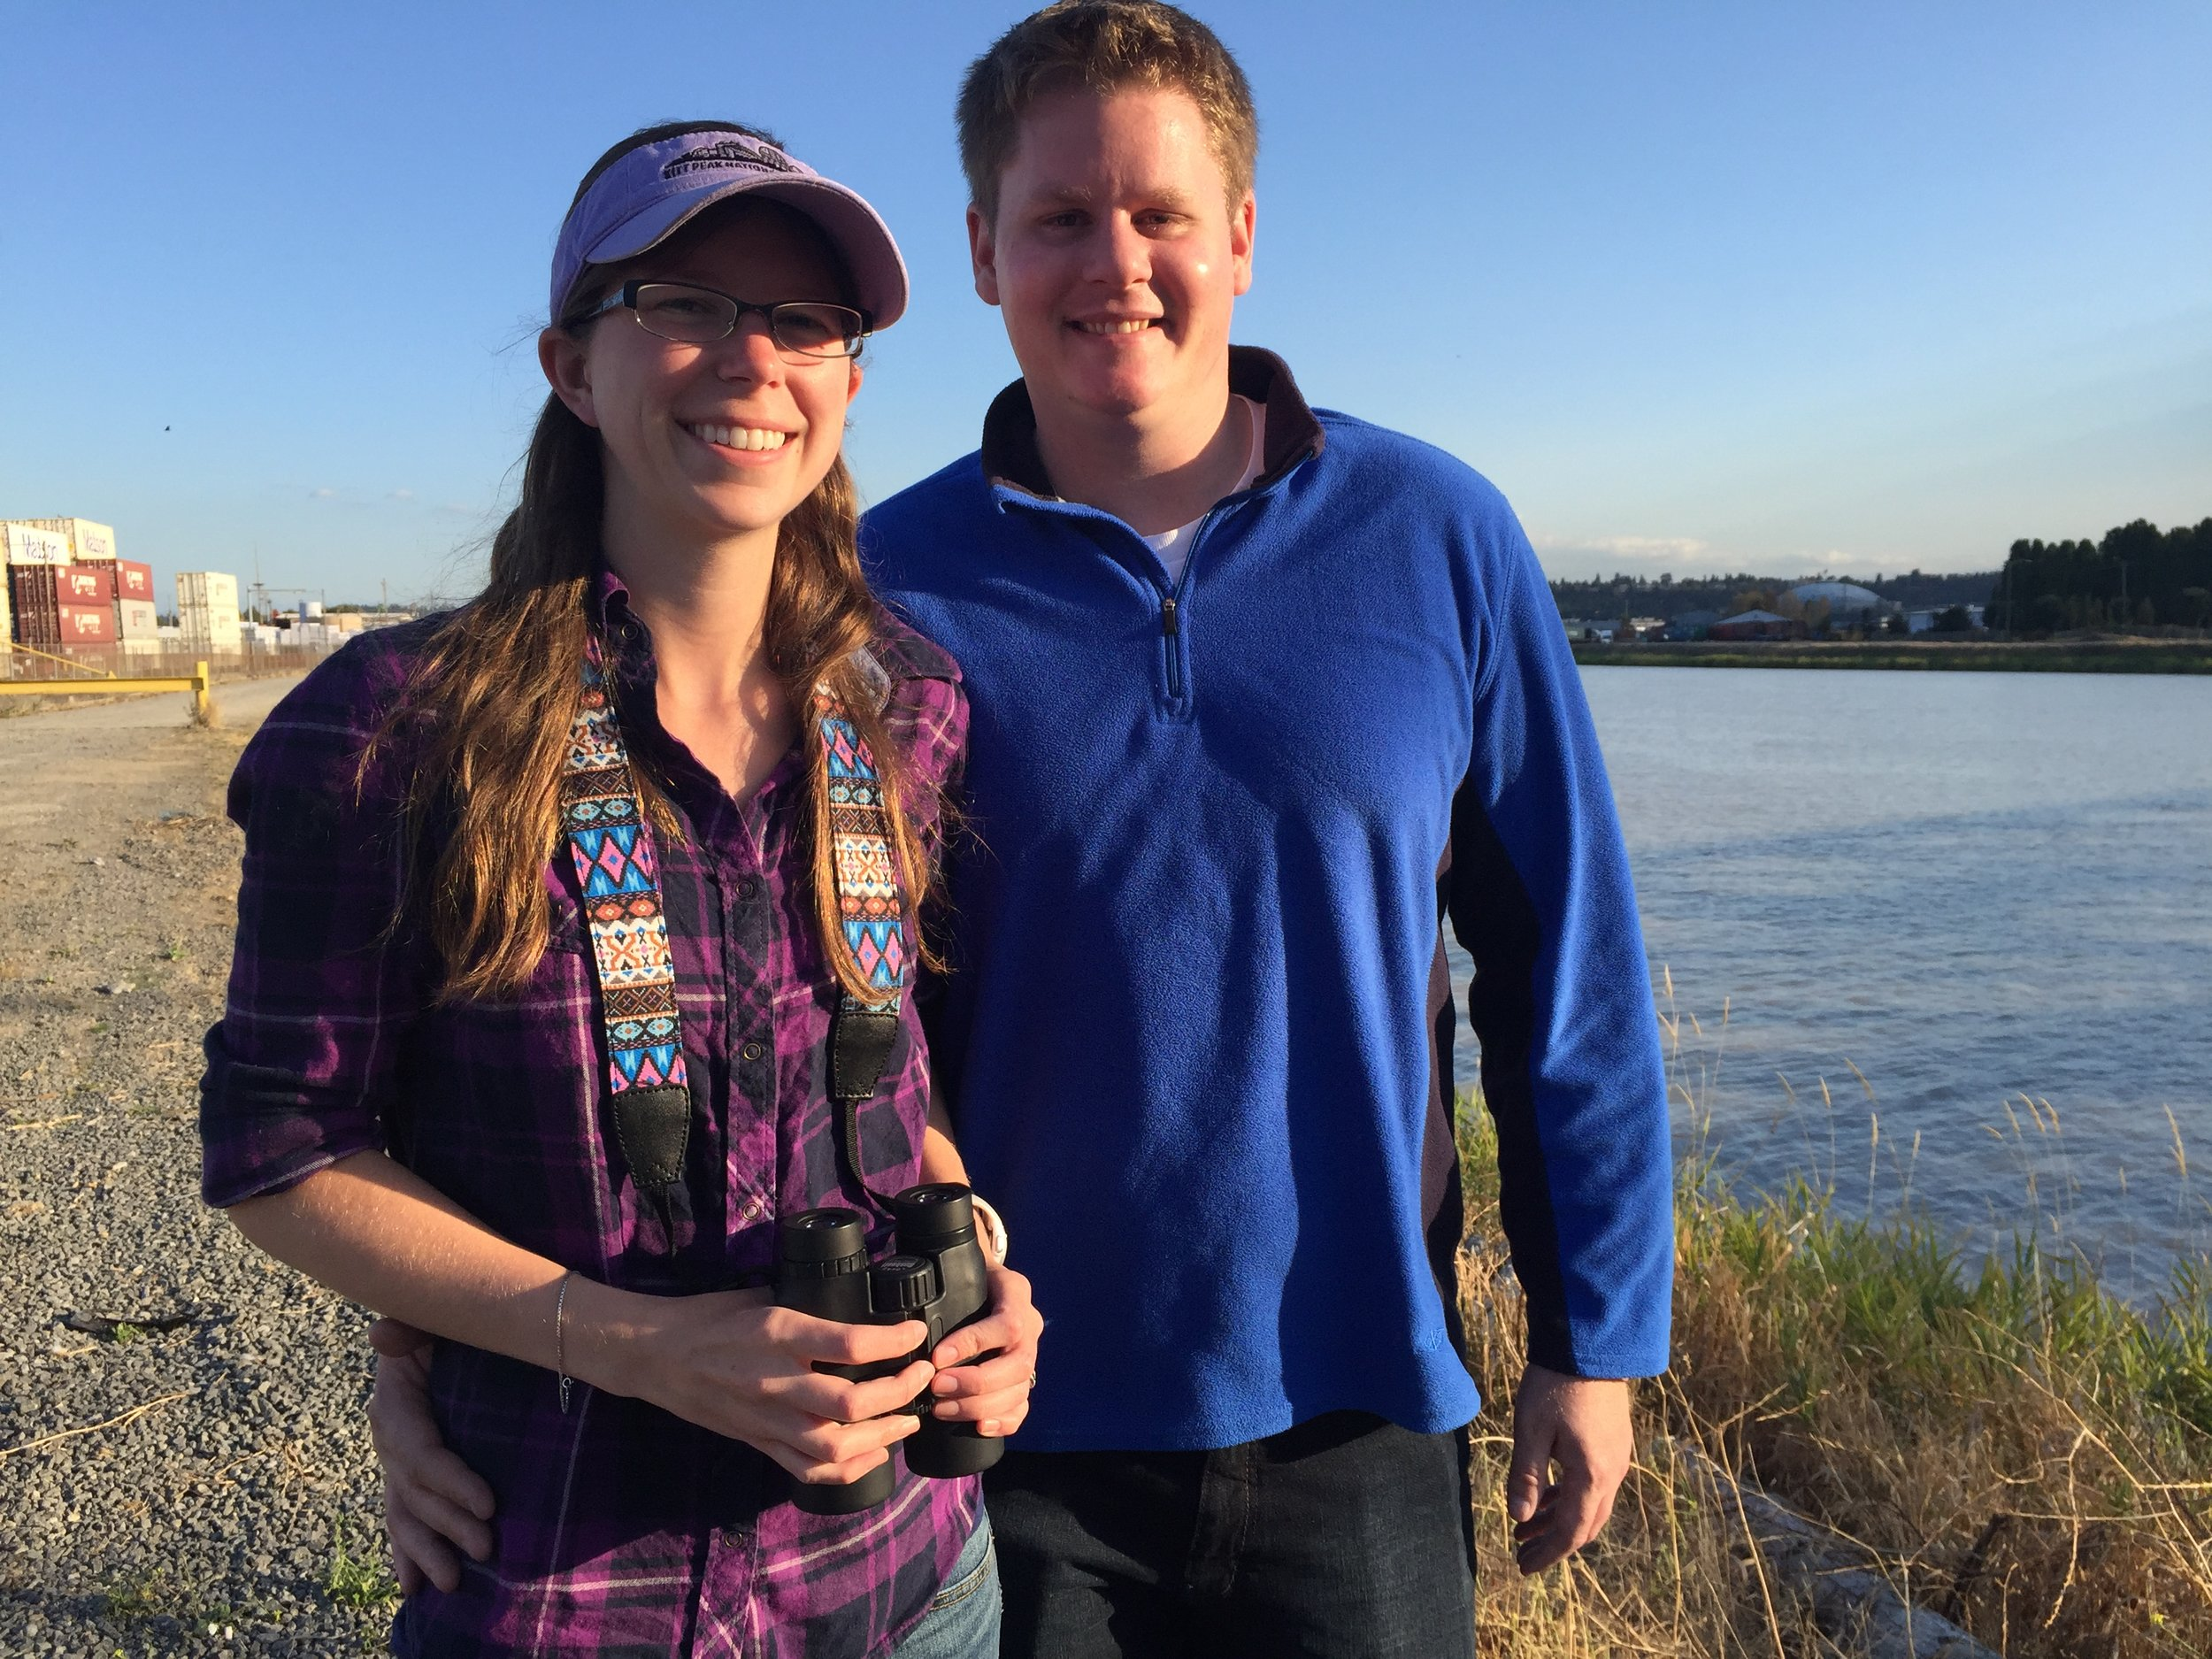 Today I birded with Meghin and Aaron along the Puyallup River in Tacoma, Washington.